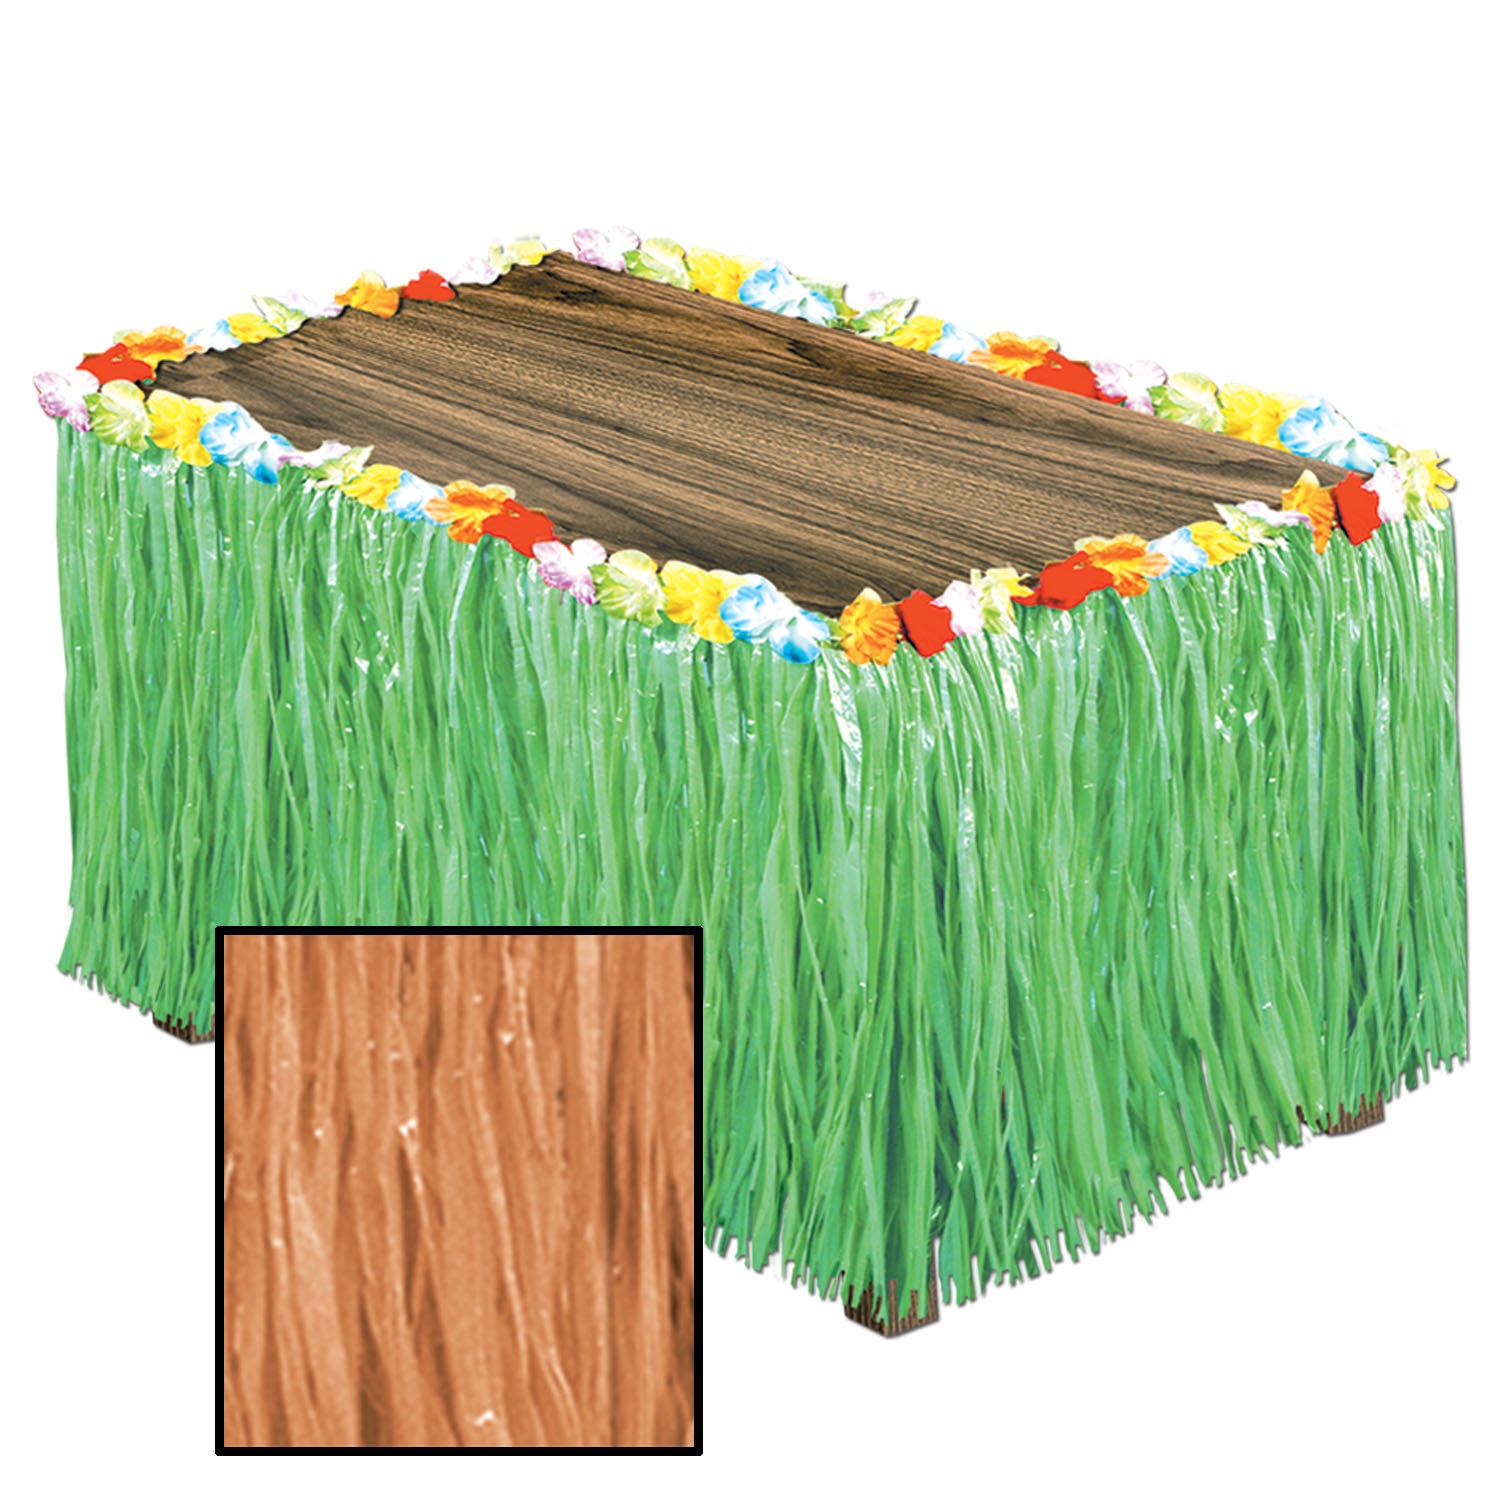 Artificial Grass Table Skirting (Pack of 6) Artificial Grass Table Skirting, decoration, luau, new years eve, wholesale, inexpensive, bulk